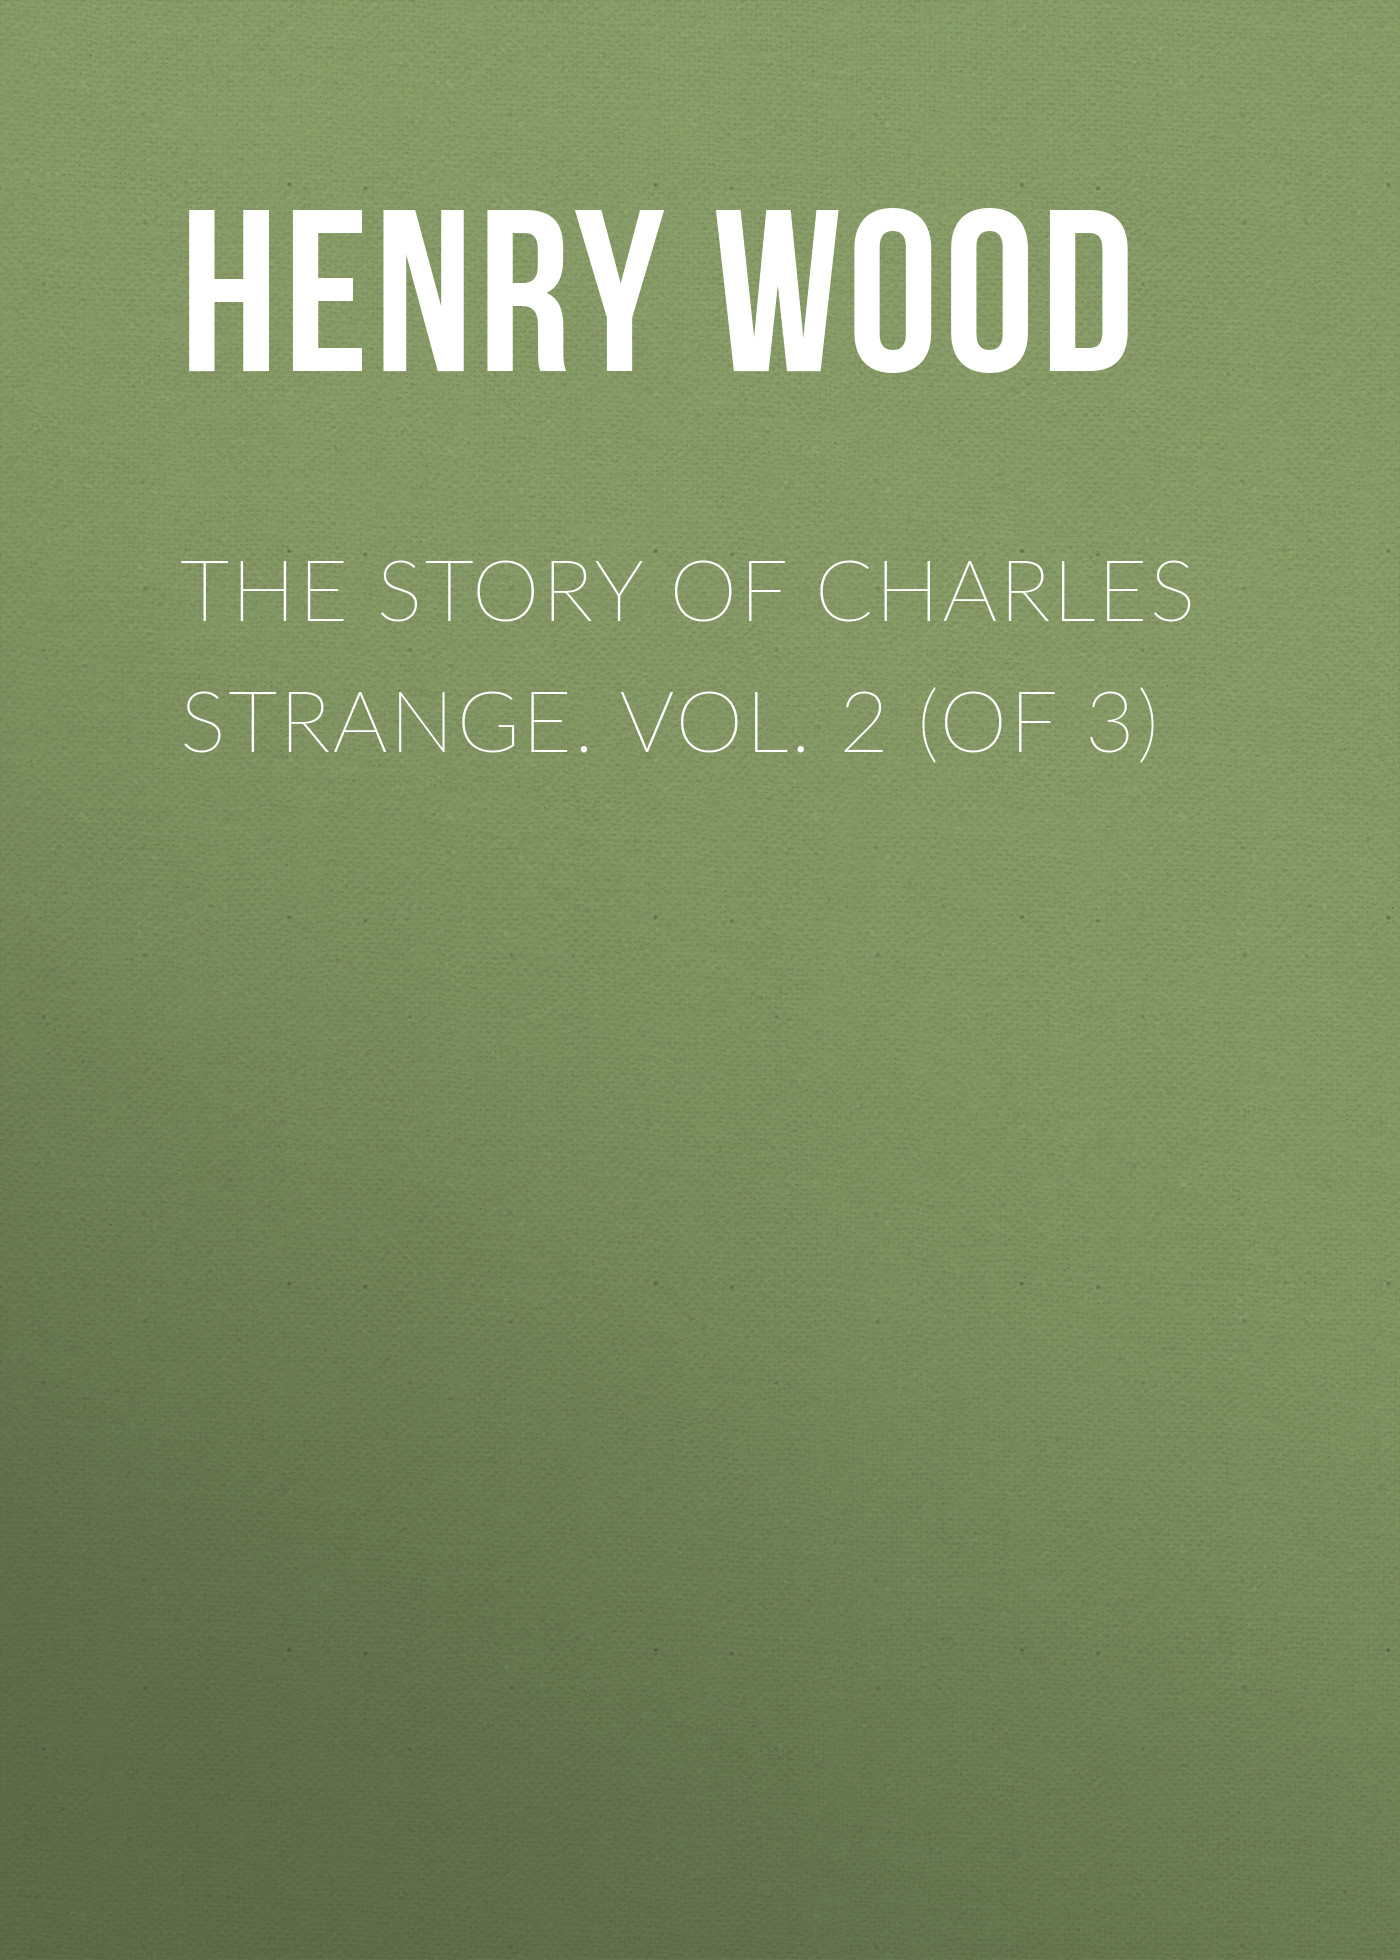 Henry Wood The Story of Charles Strange. Vol. 2 (of 3) bucke charles ruins of ancient cities vol 1 of 2